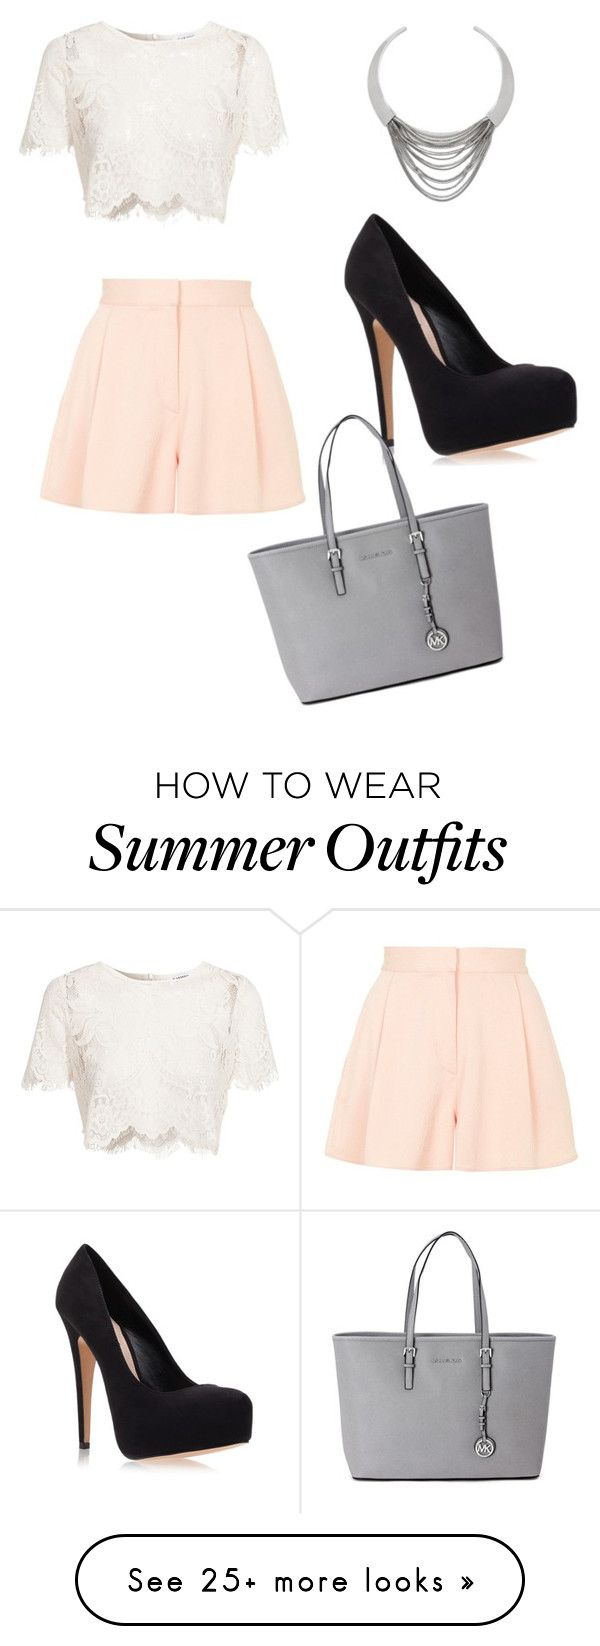 """""""Cute summer outfit"""" by alexisazran on Polyvore featuring Glamorous, Diane Von Furstenberg, Topshop, Carvela Kurt Geiger and Michael Kors"""